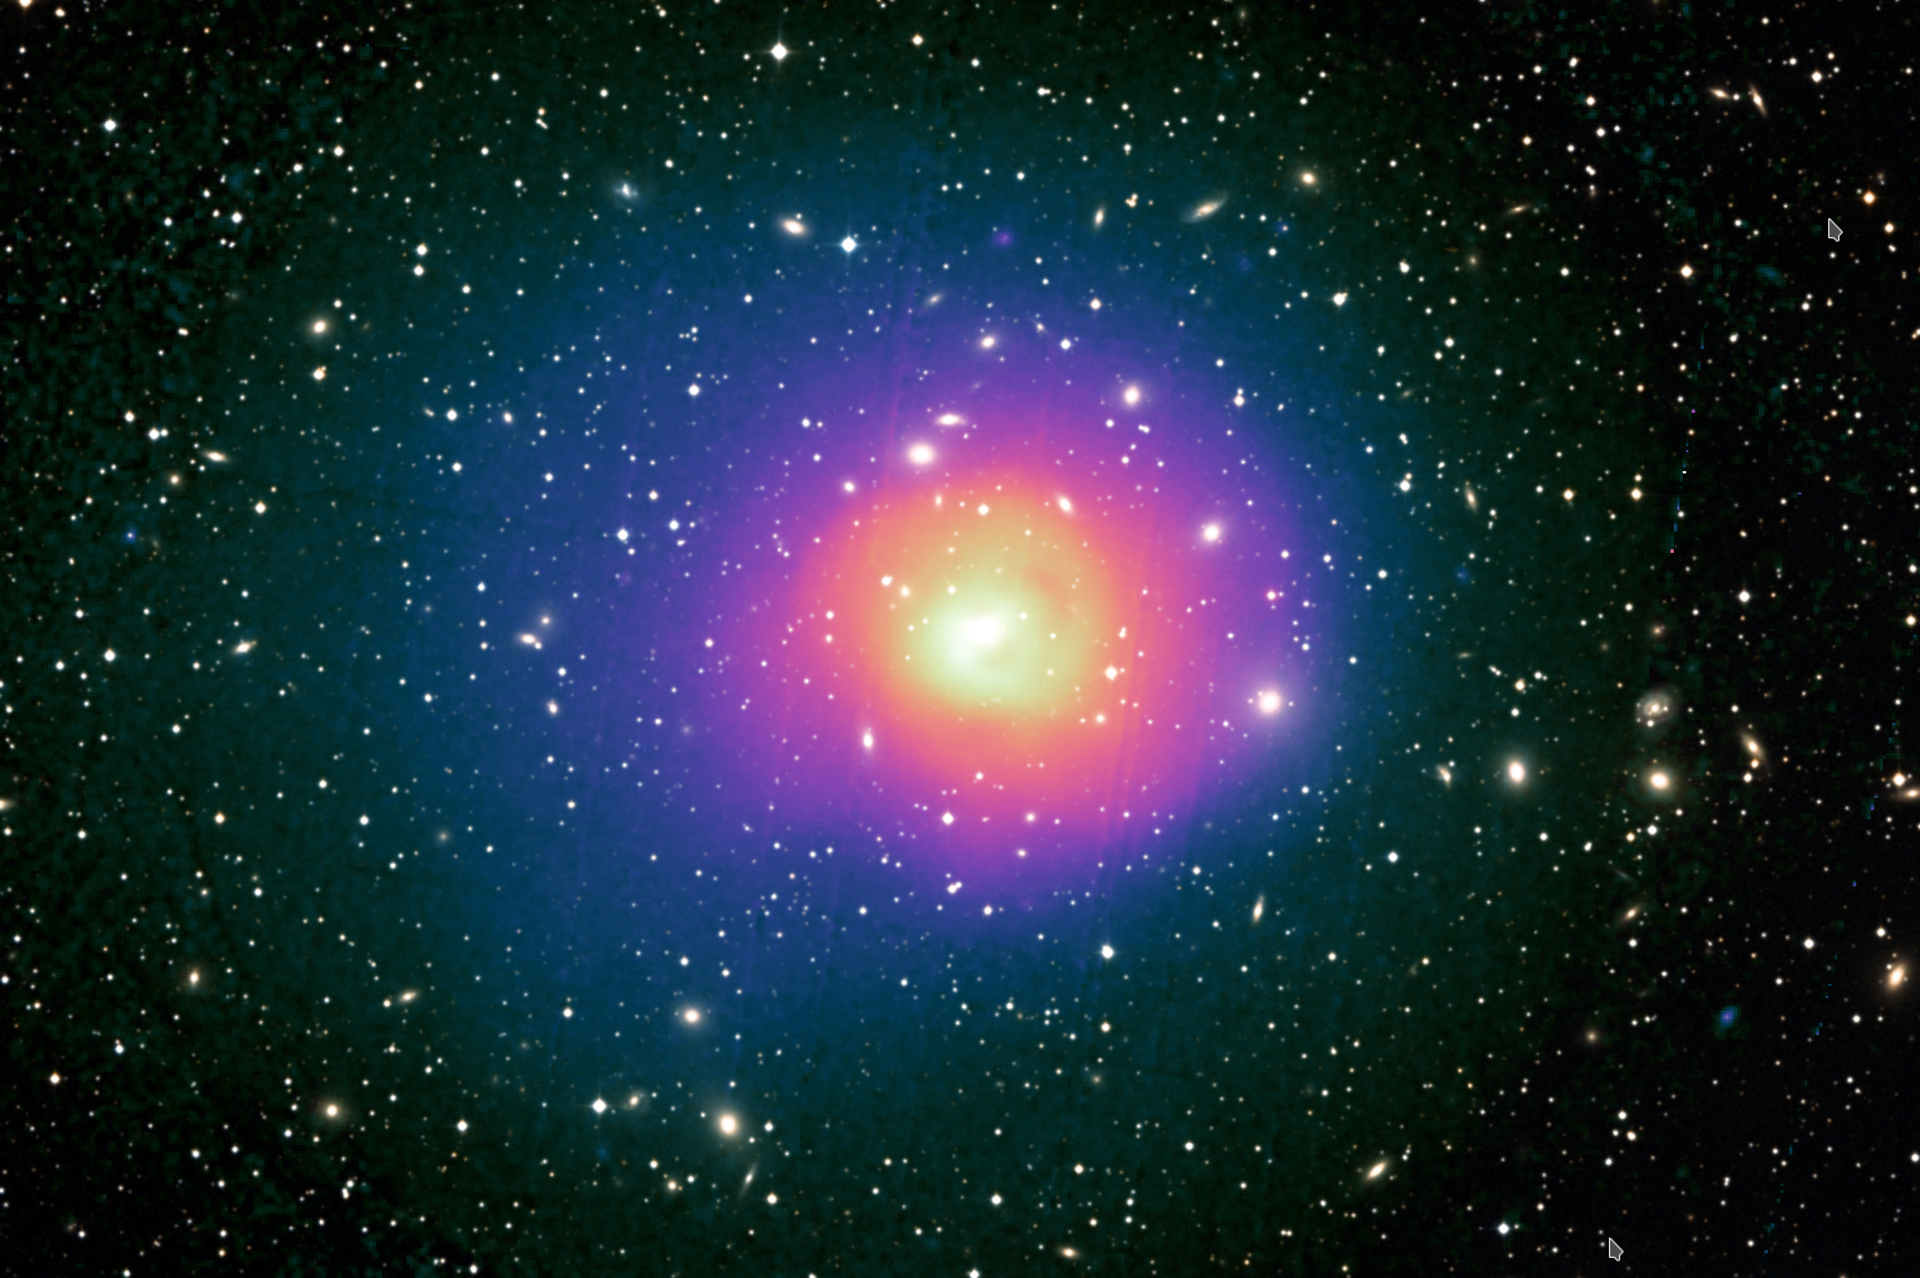 X-ray and optical view of the Perseus galaxy cluster